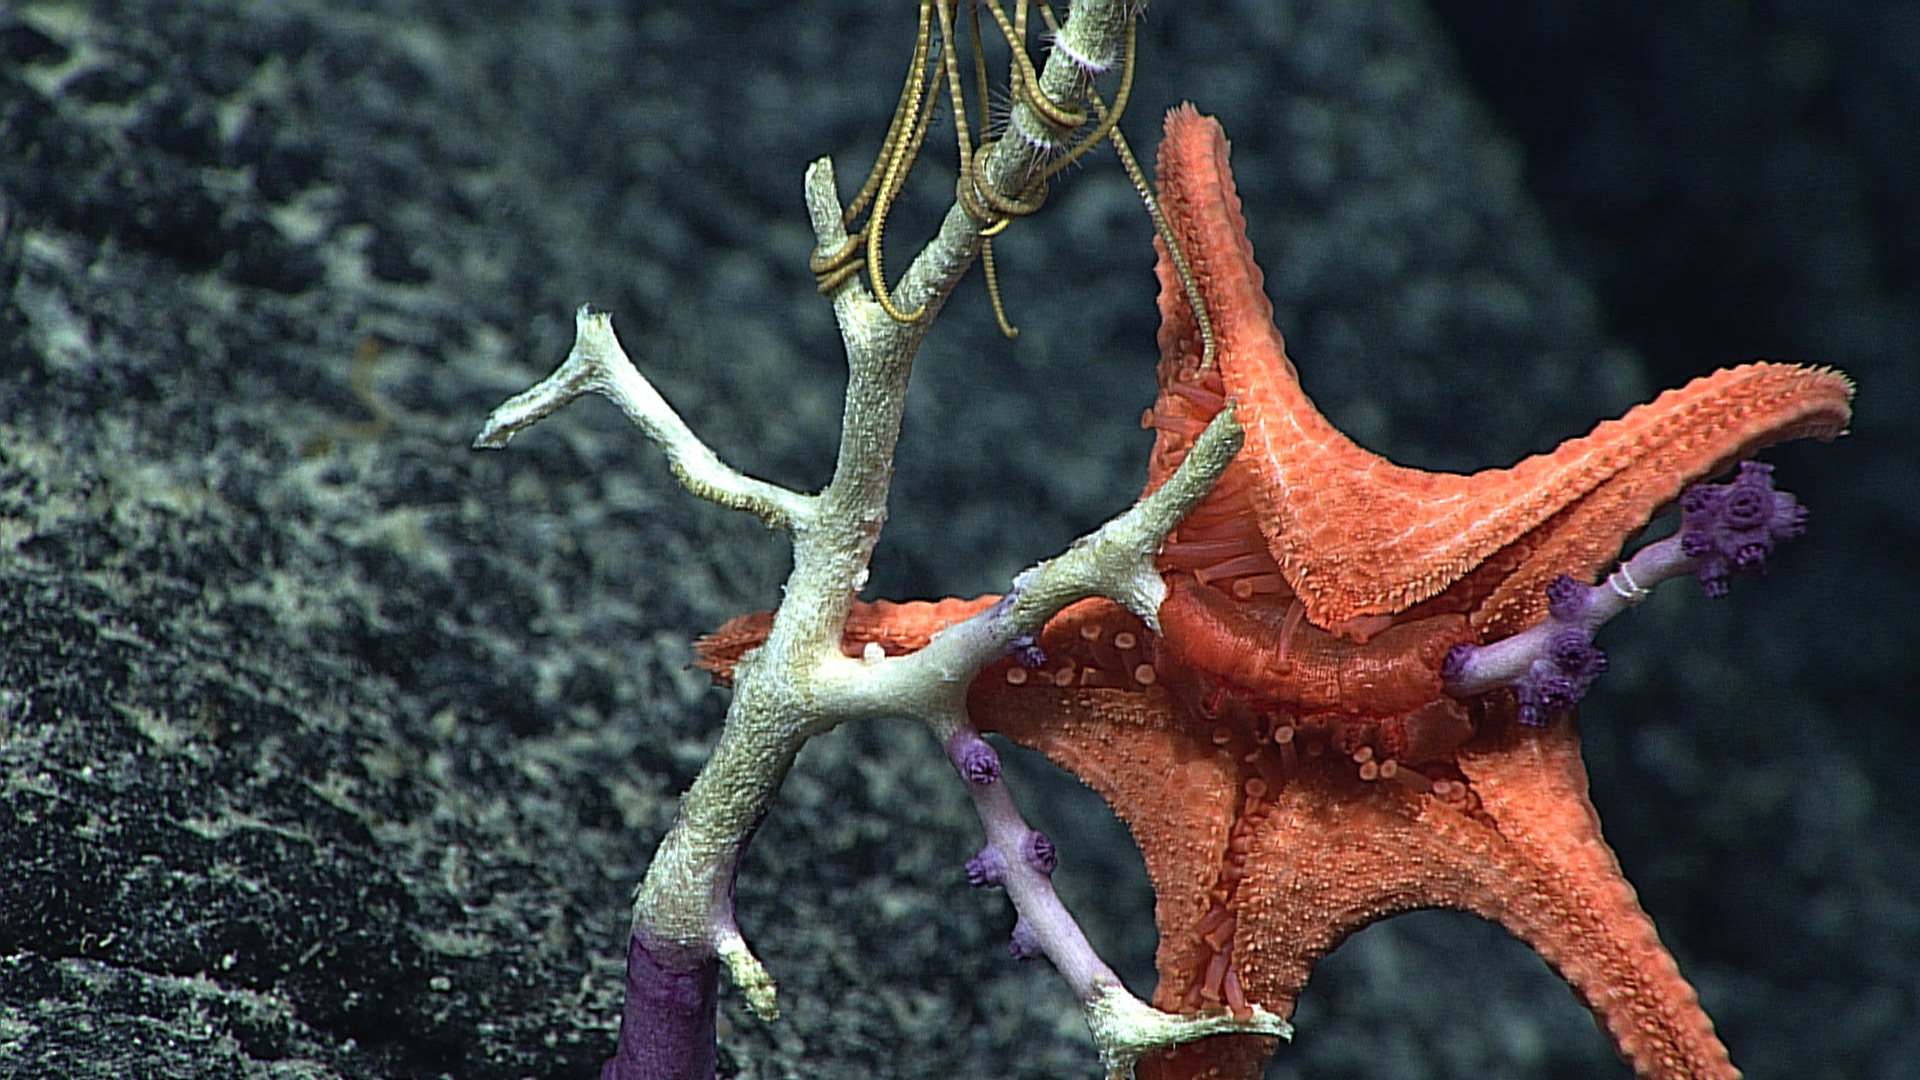 Fragmentation asexual reproduction in starfish family services